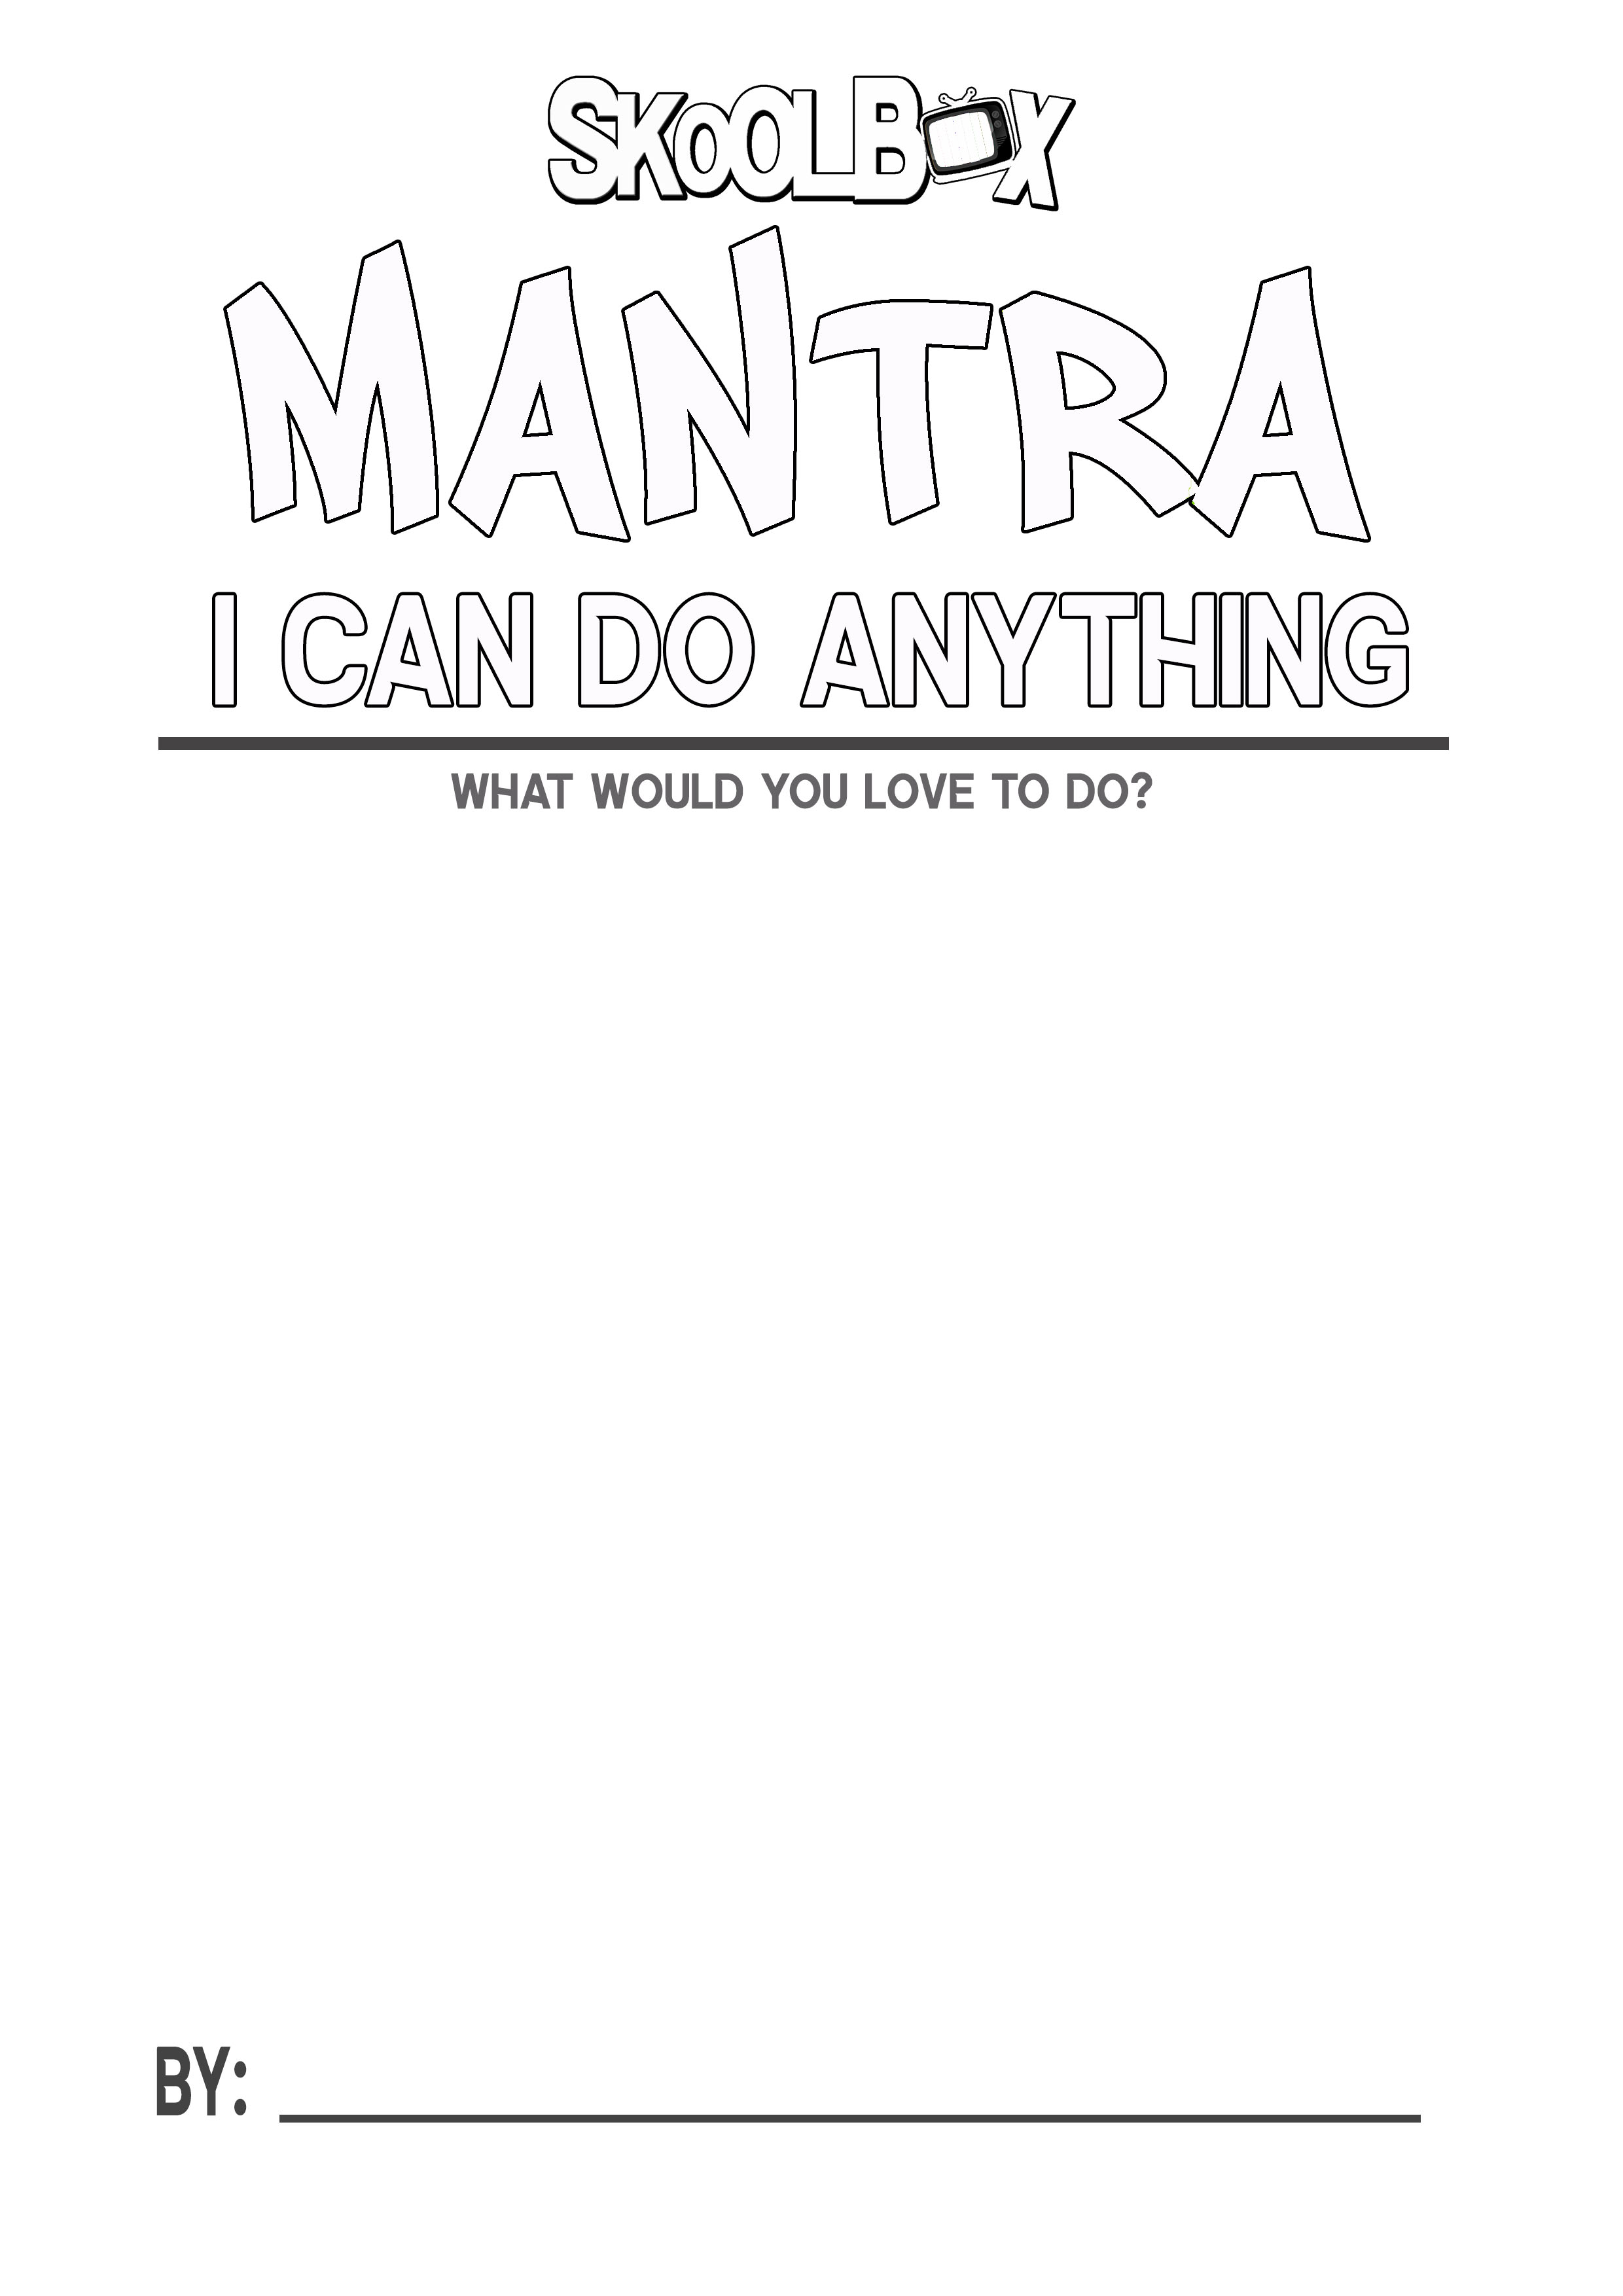 MANTRA 16 I CAN DO ANYTHING